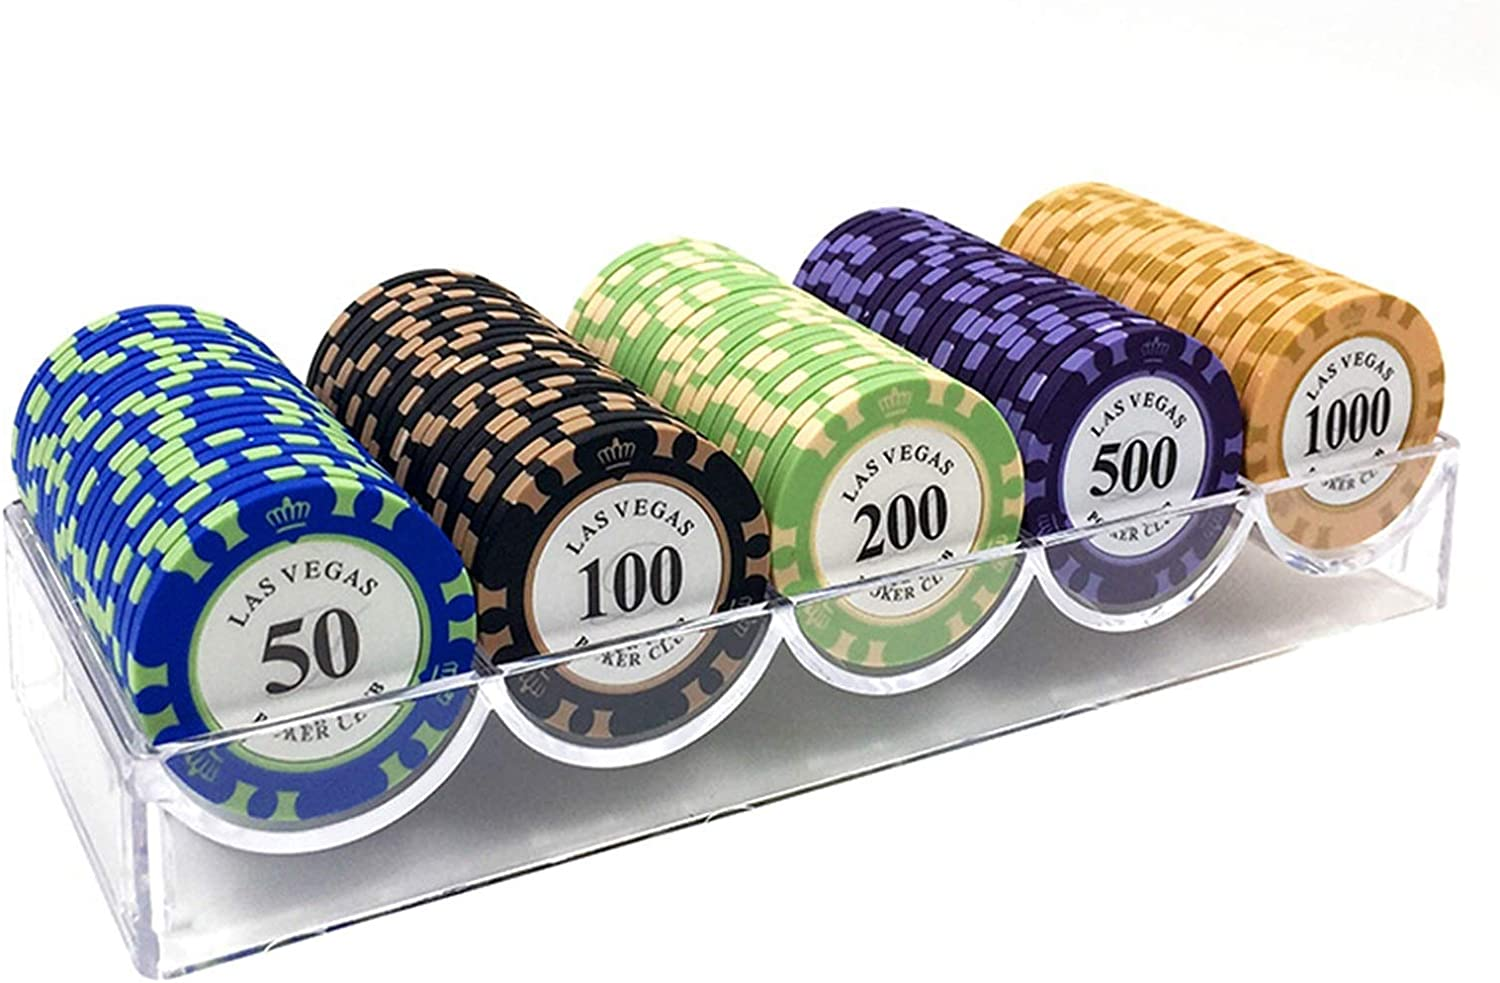 100st Poker Chips Set Met Doos 14g Klei/Ceramic Poker Chips Sets Poker Chips Casino Coins Chips Card Decks Chip Casino Chip Casino (Color : K as pic) D as pic